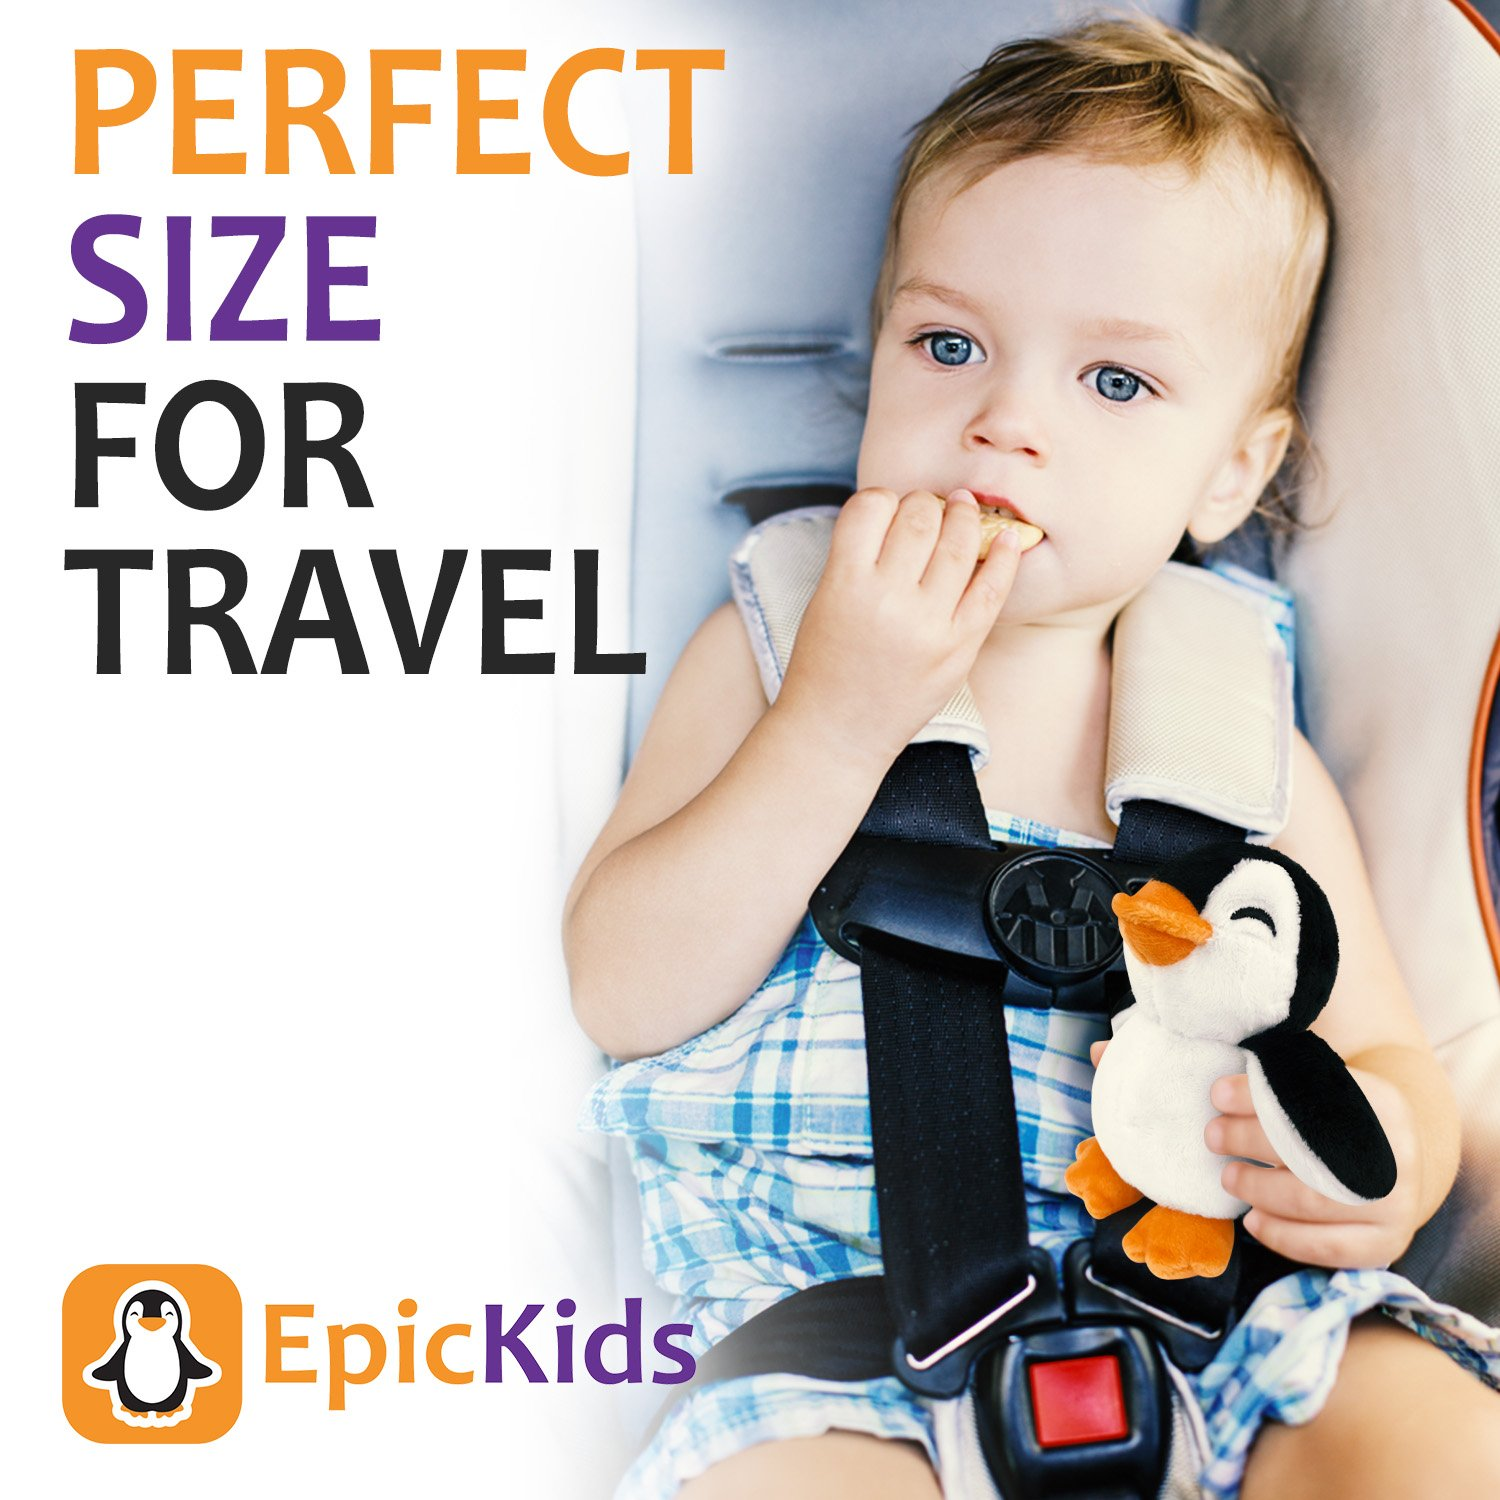 Stuffed Animal Toy Suitable For Babies and Children EpicKids Penguin Plush 5 Inches